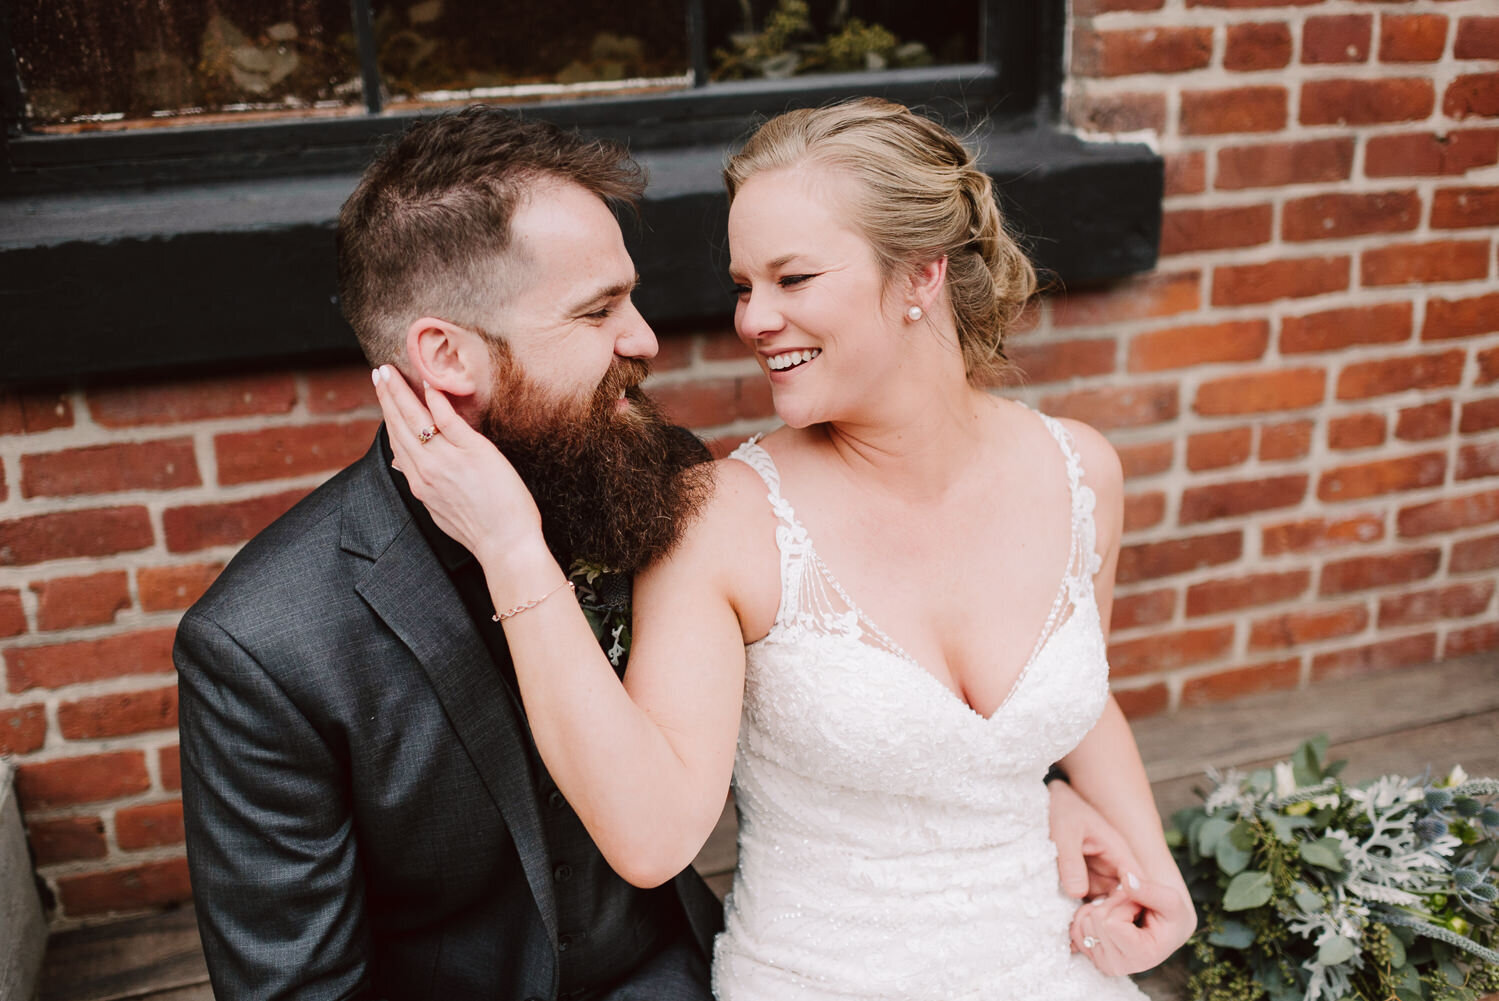 clementine-nashville-wedding-18